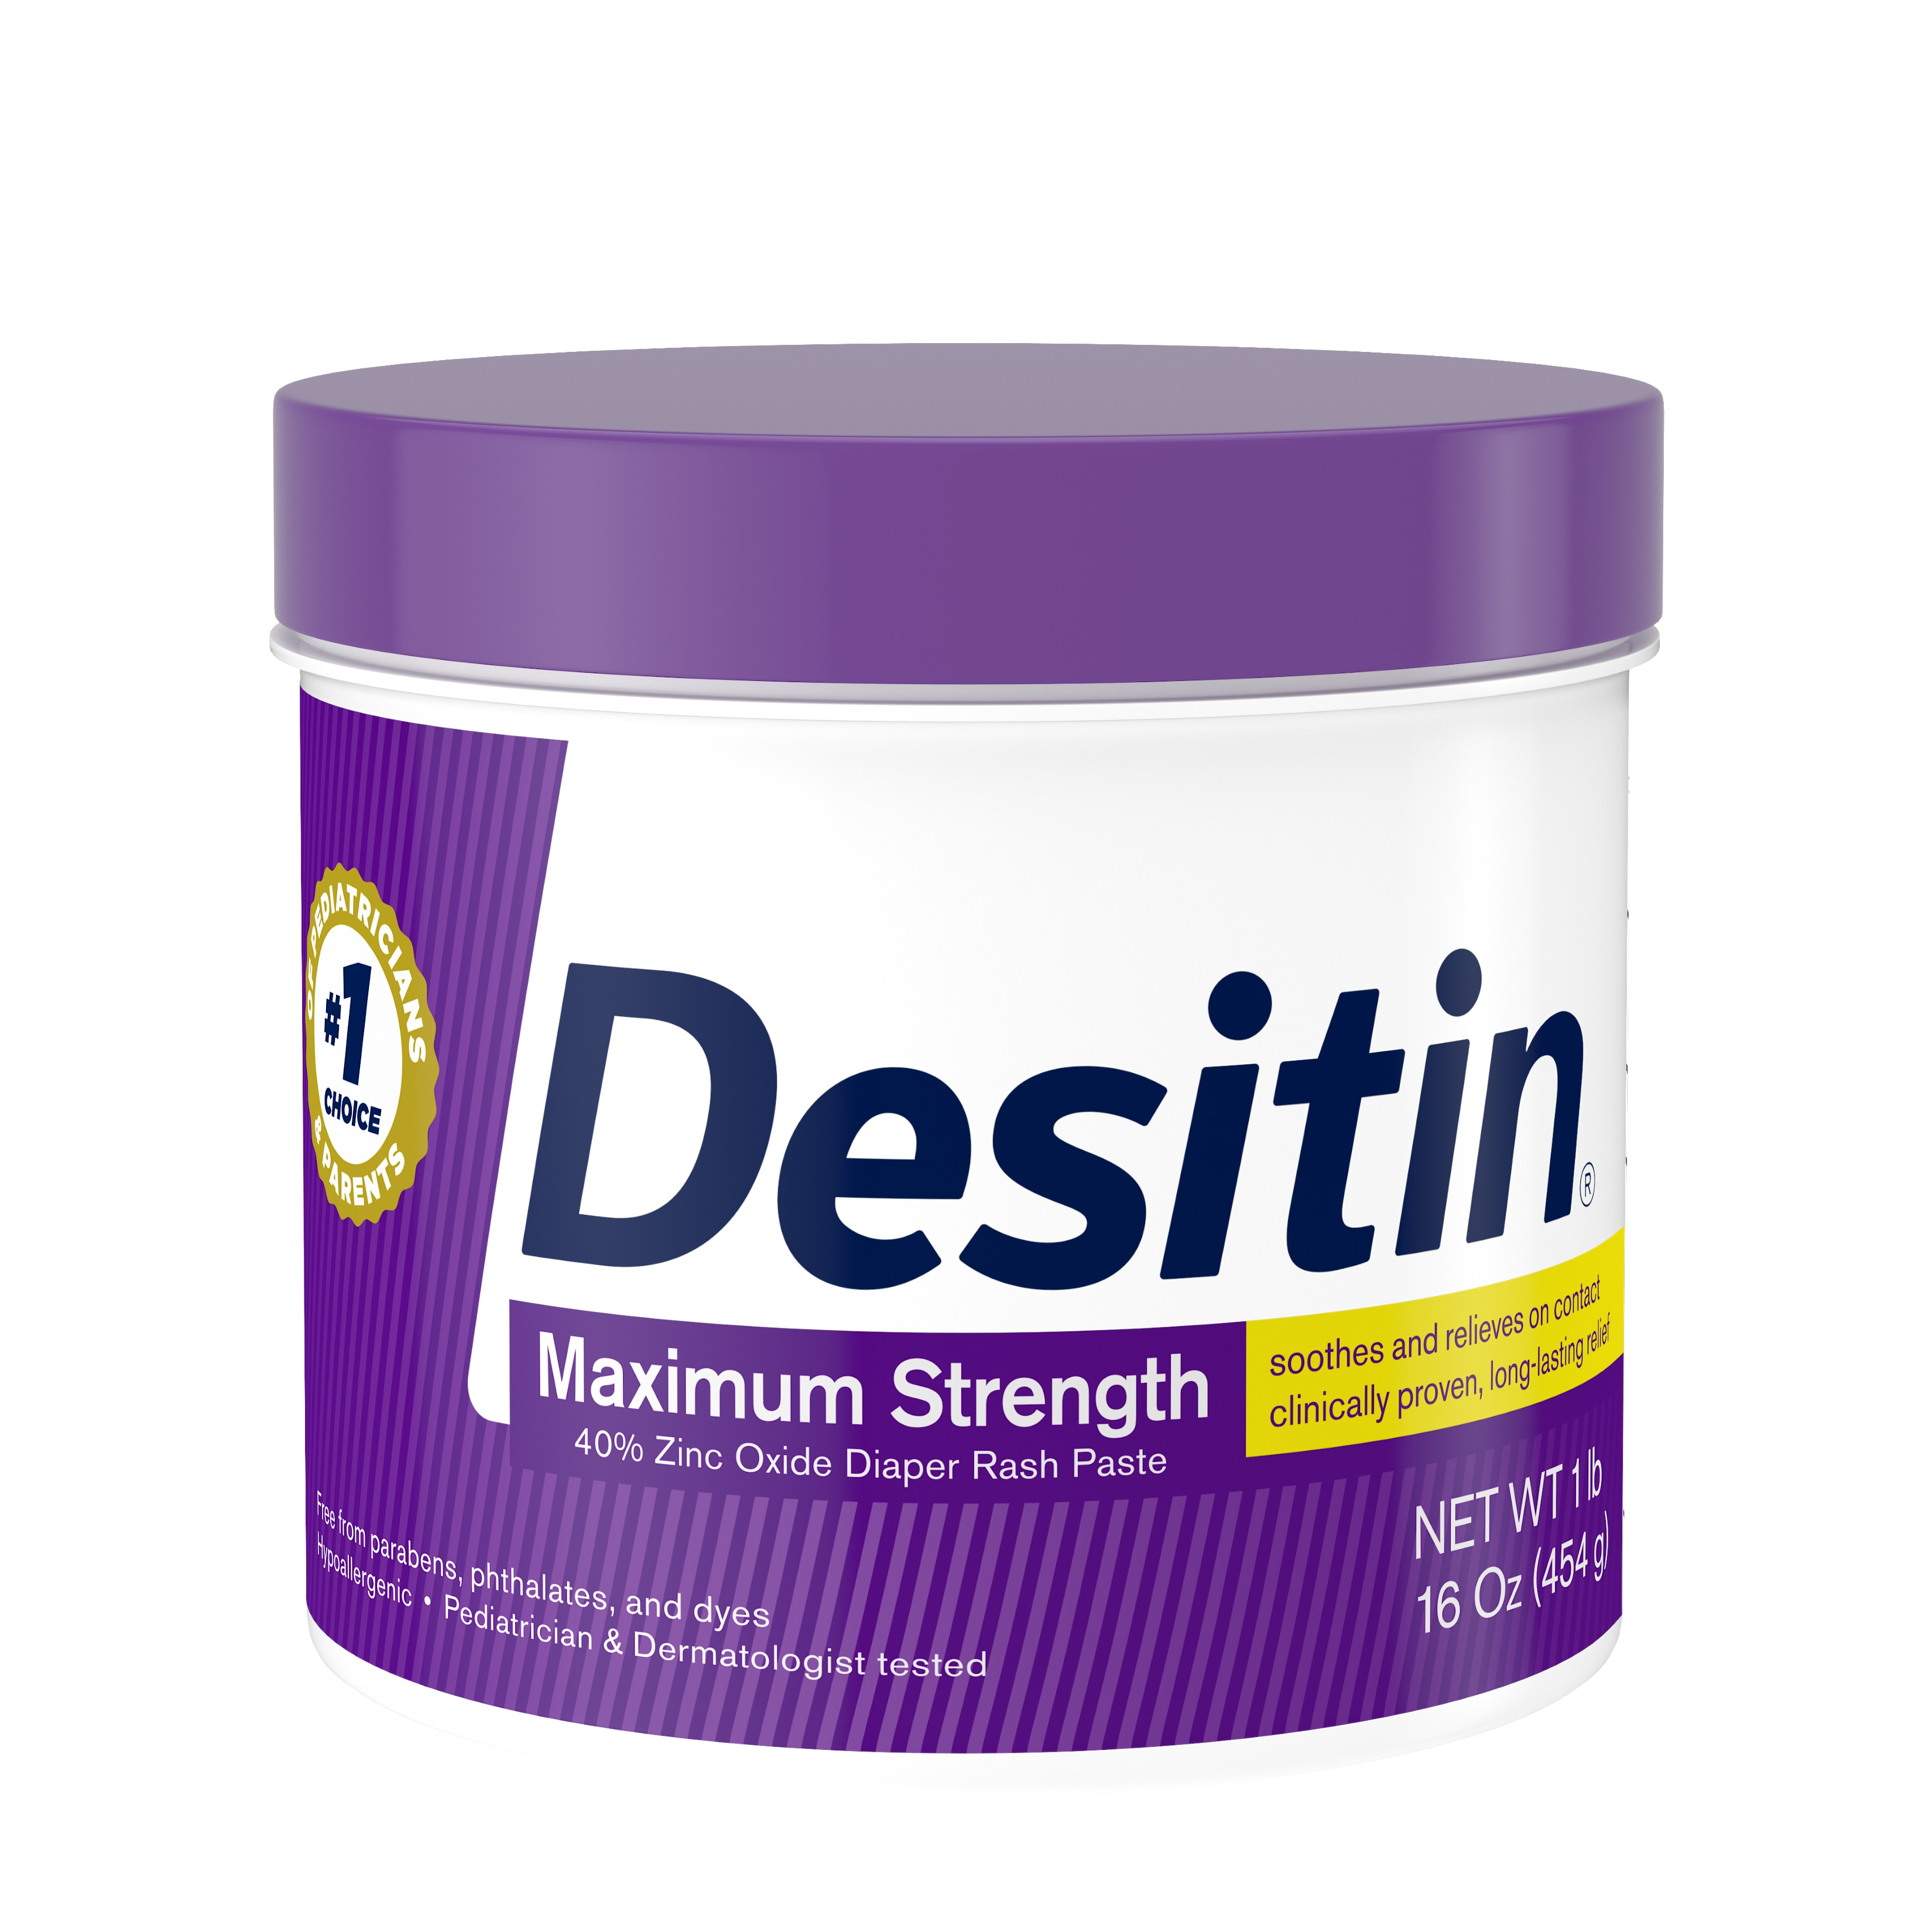 Desitin Maximum Strength Diaper Rash Cream with Zinc Oxide, 16 oz